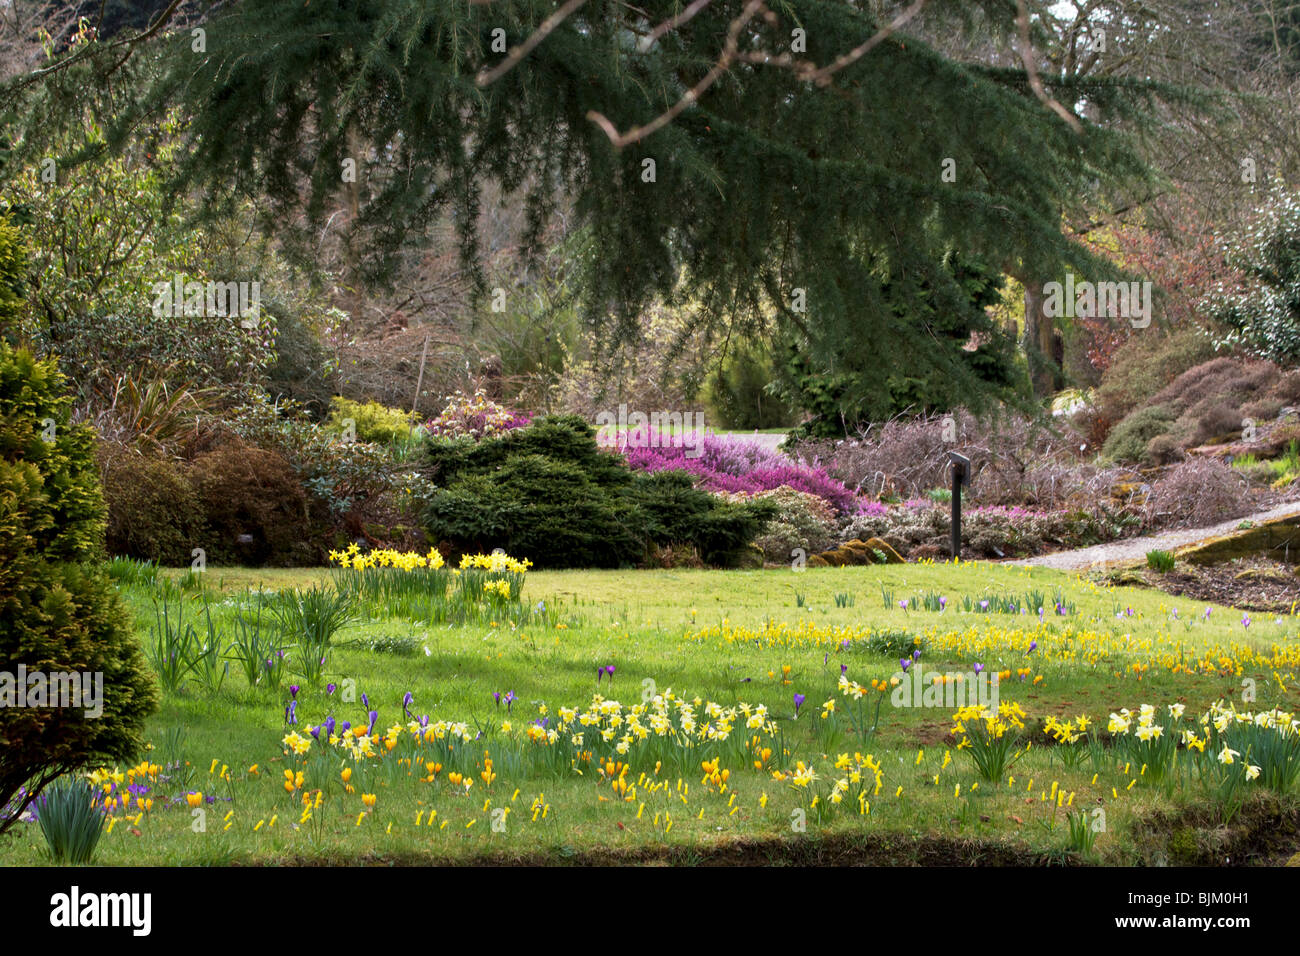 Landscaped area of Ness Gardens, with profusion of spring flowers - Stock Image